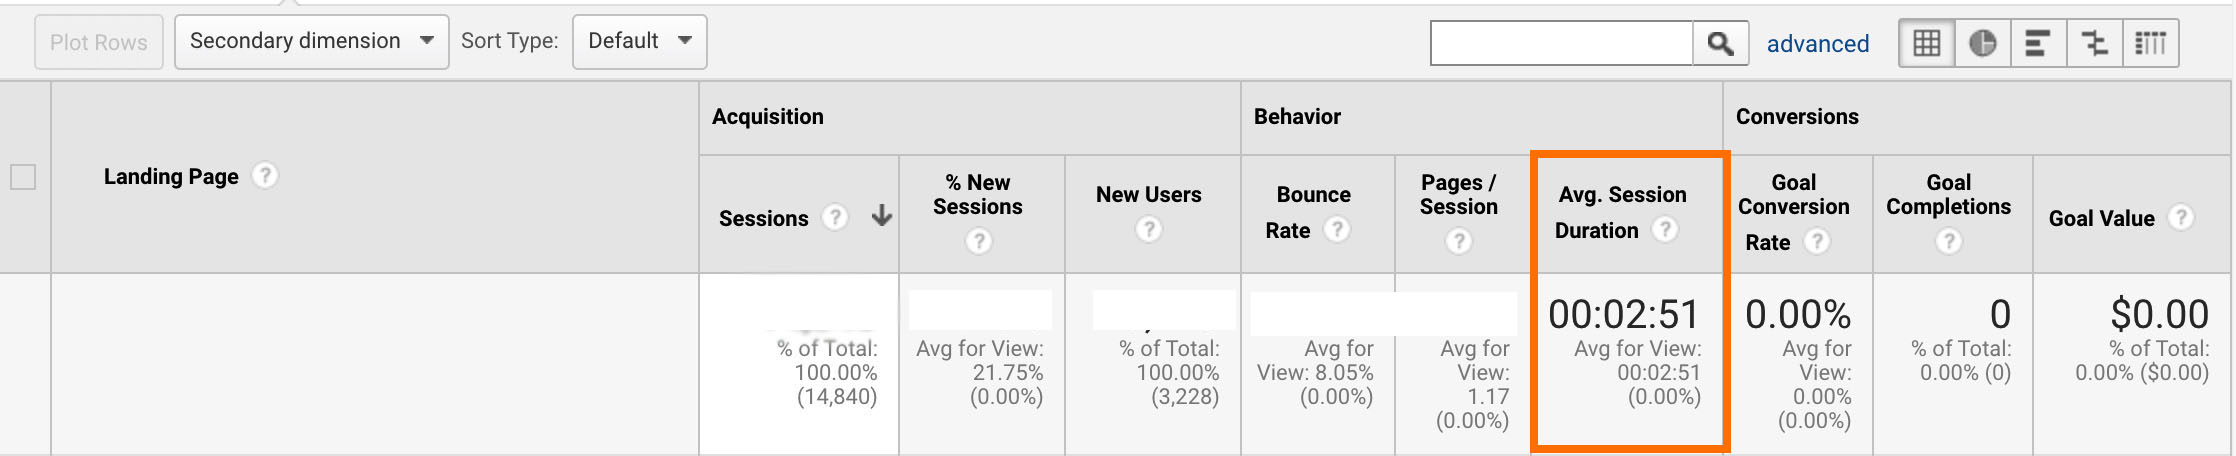 avg session duration for individual landing pages